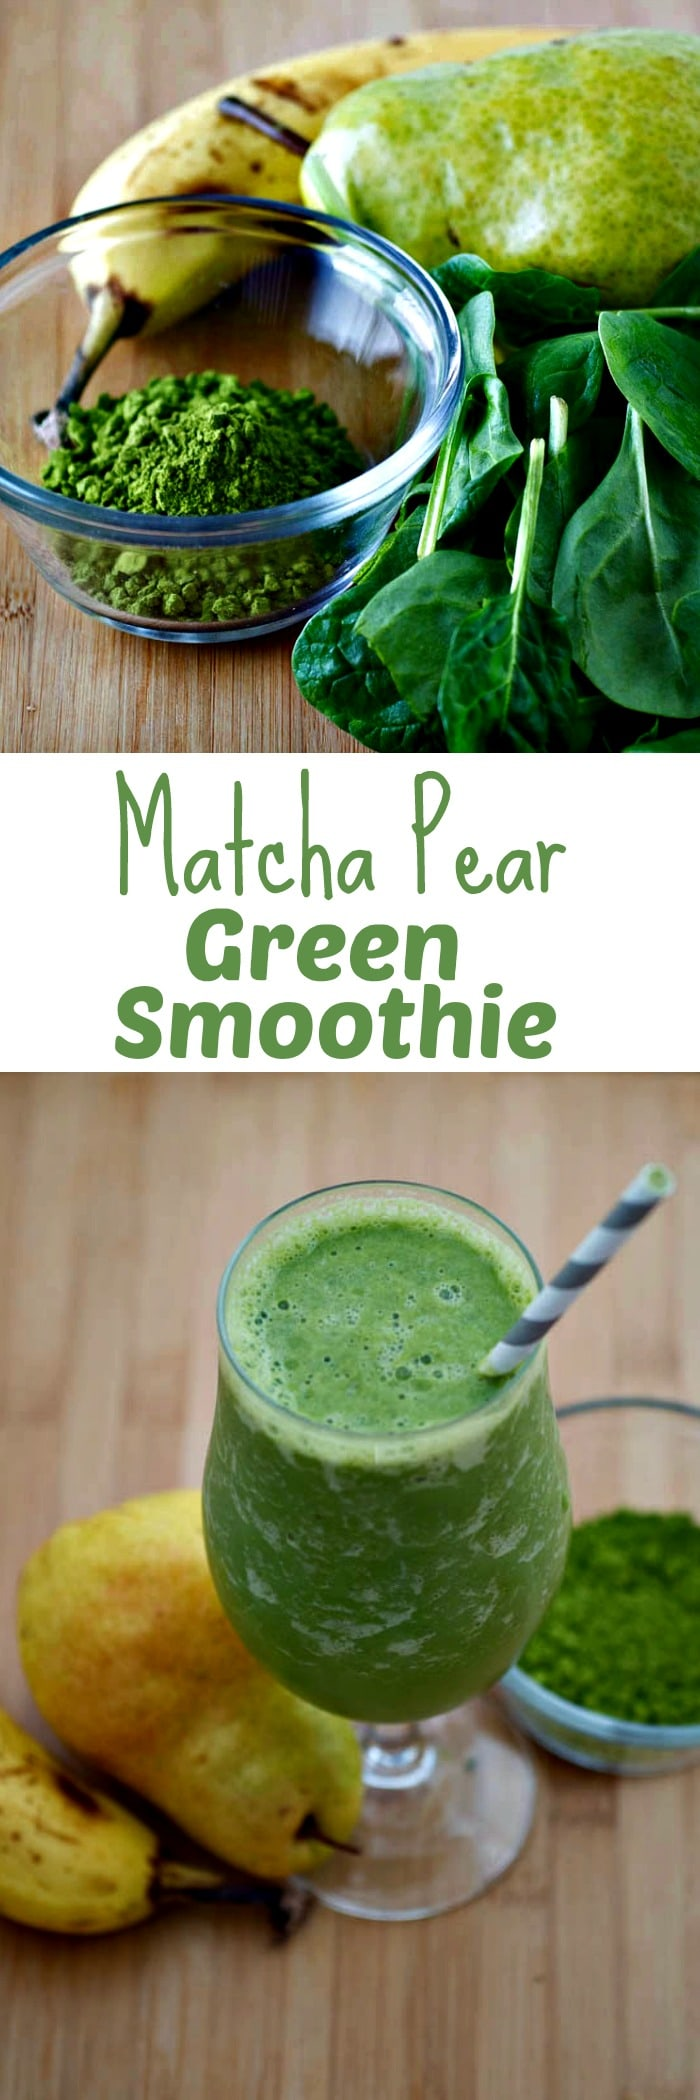 Matcha Pear Green Smoothie - A healthy green smoothie, perfect for St. Patrick's Day. A healthy blend of pears, banana, spinach and green tea powder with almond milk.